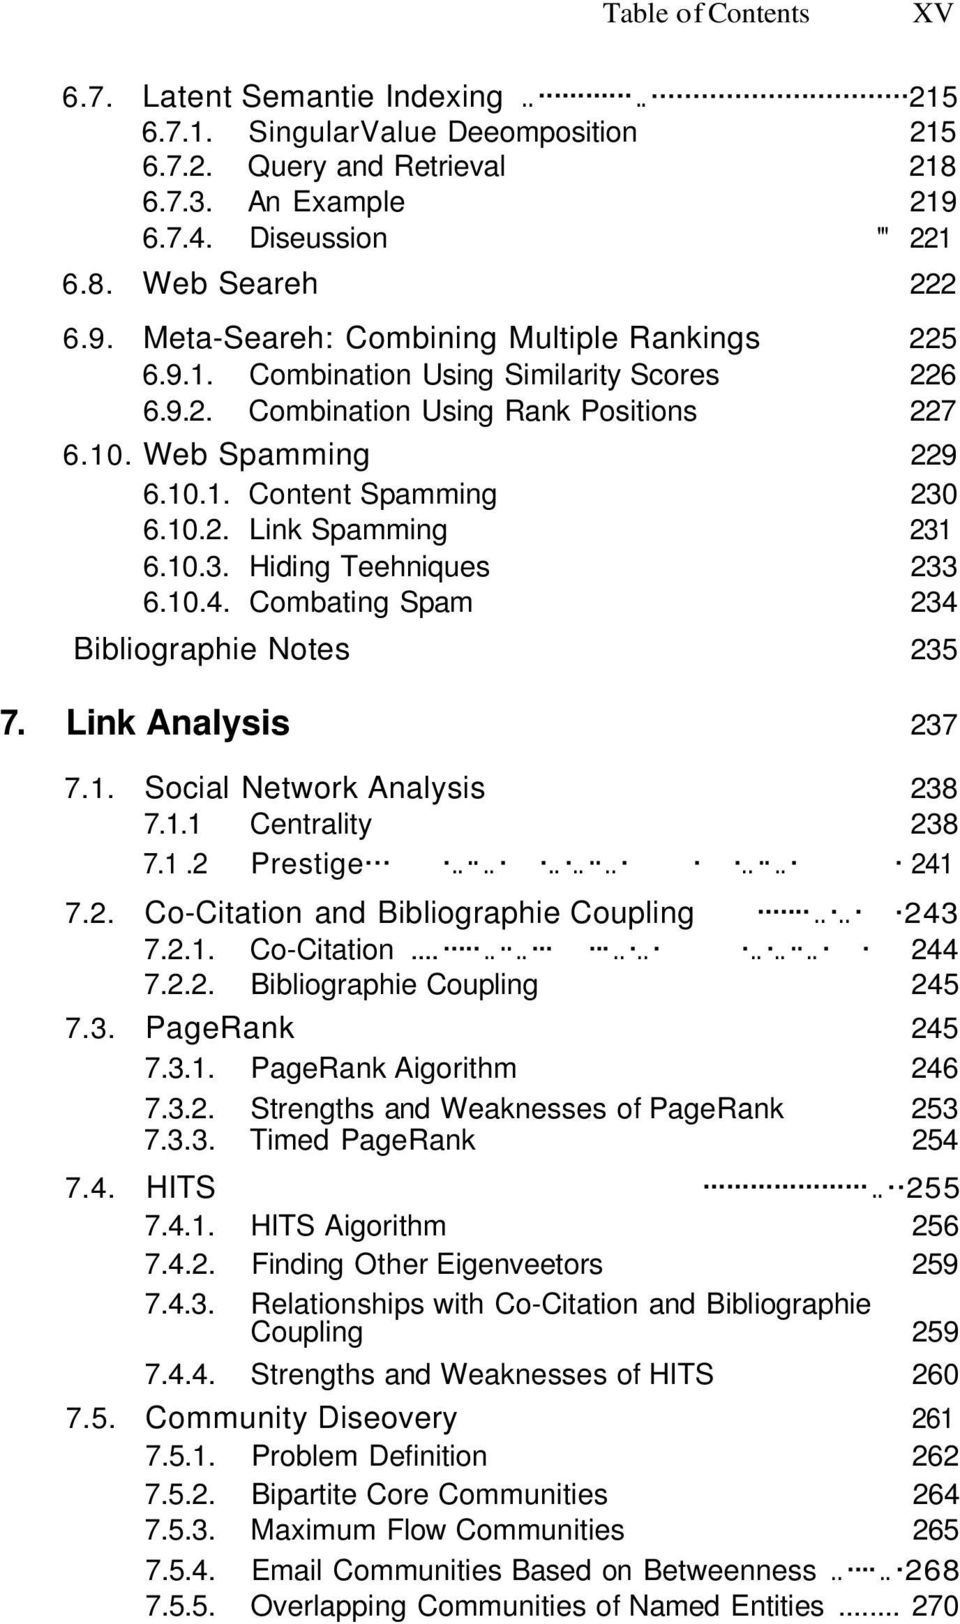 10.4. Combating Spam 234 Bibliographie Notes 235 7. Link Analysis 237 7.1. Social Network Analysis 238 7.1.1 Centrality 238 7.1.2 Prestige.............. 241 7.2. Co-Citation and Bibliographie Coupling.